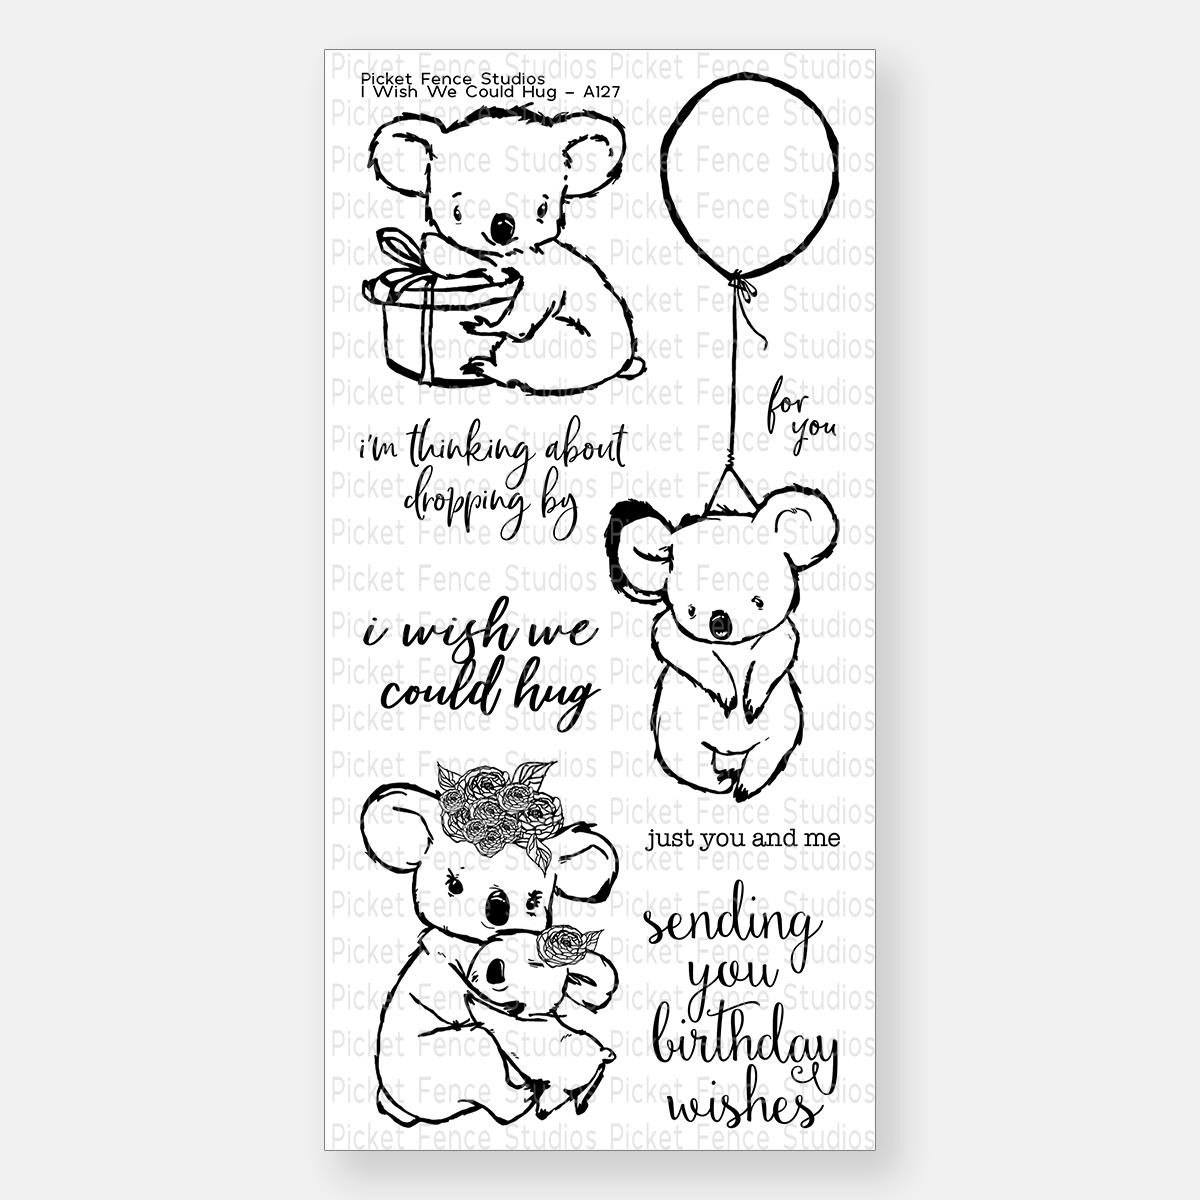 I Wish We Could Hug, Picket Fence Studios Clear Stamps - 745557990762